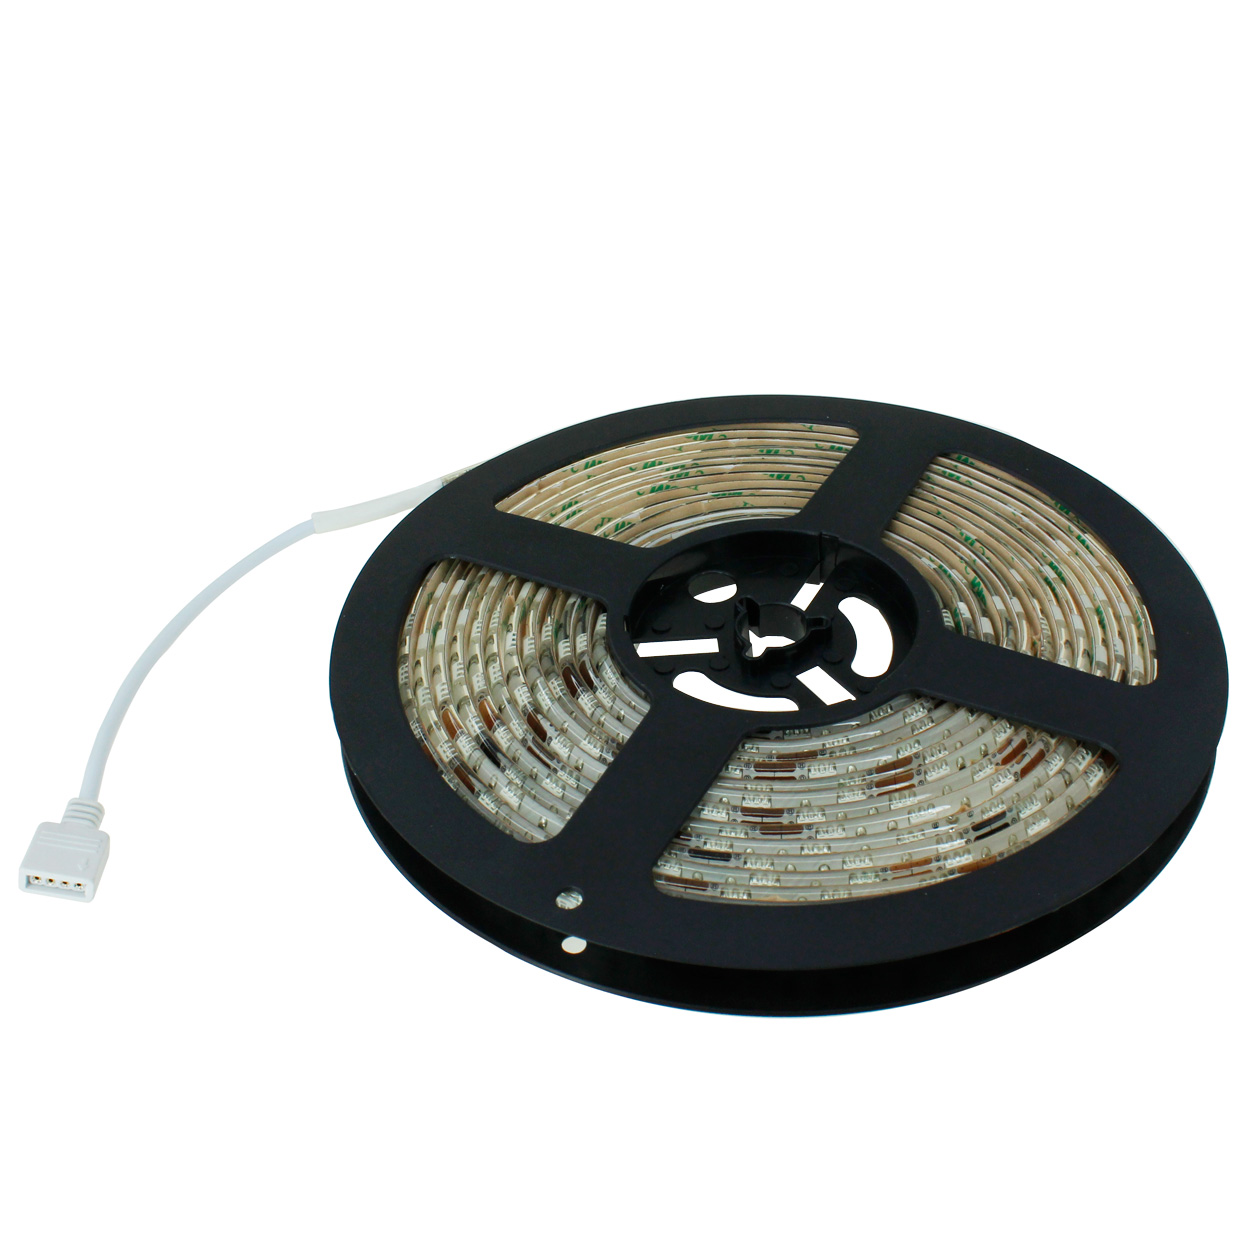 16.4ft RGB Color LED Light Strip 4-Pin Male to Female Extension, 300 Units SMD 5050 LEDs, 12V DC, Waterproof IP65